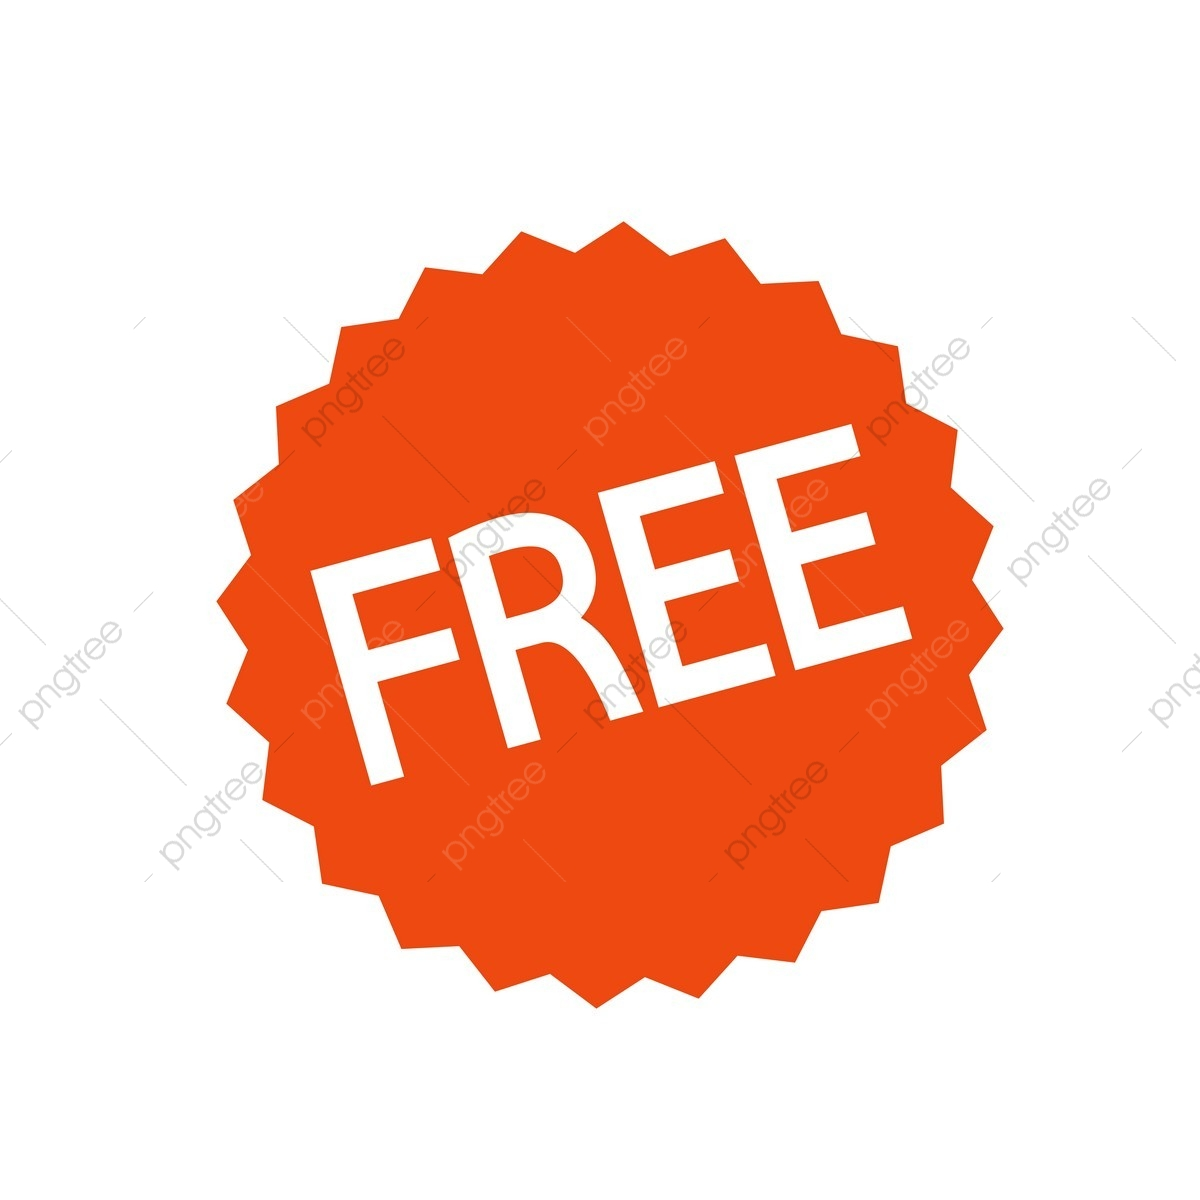 pngtree-sign-button-free-icon-png-image_3568036